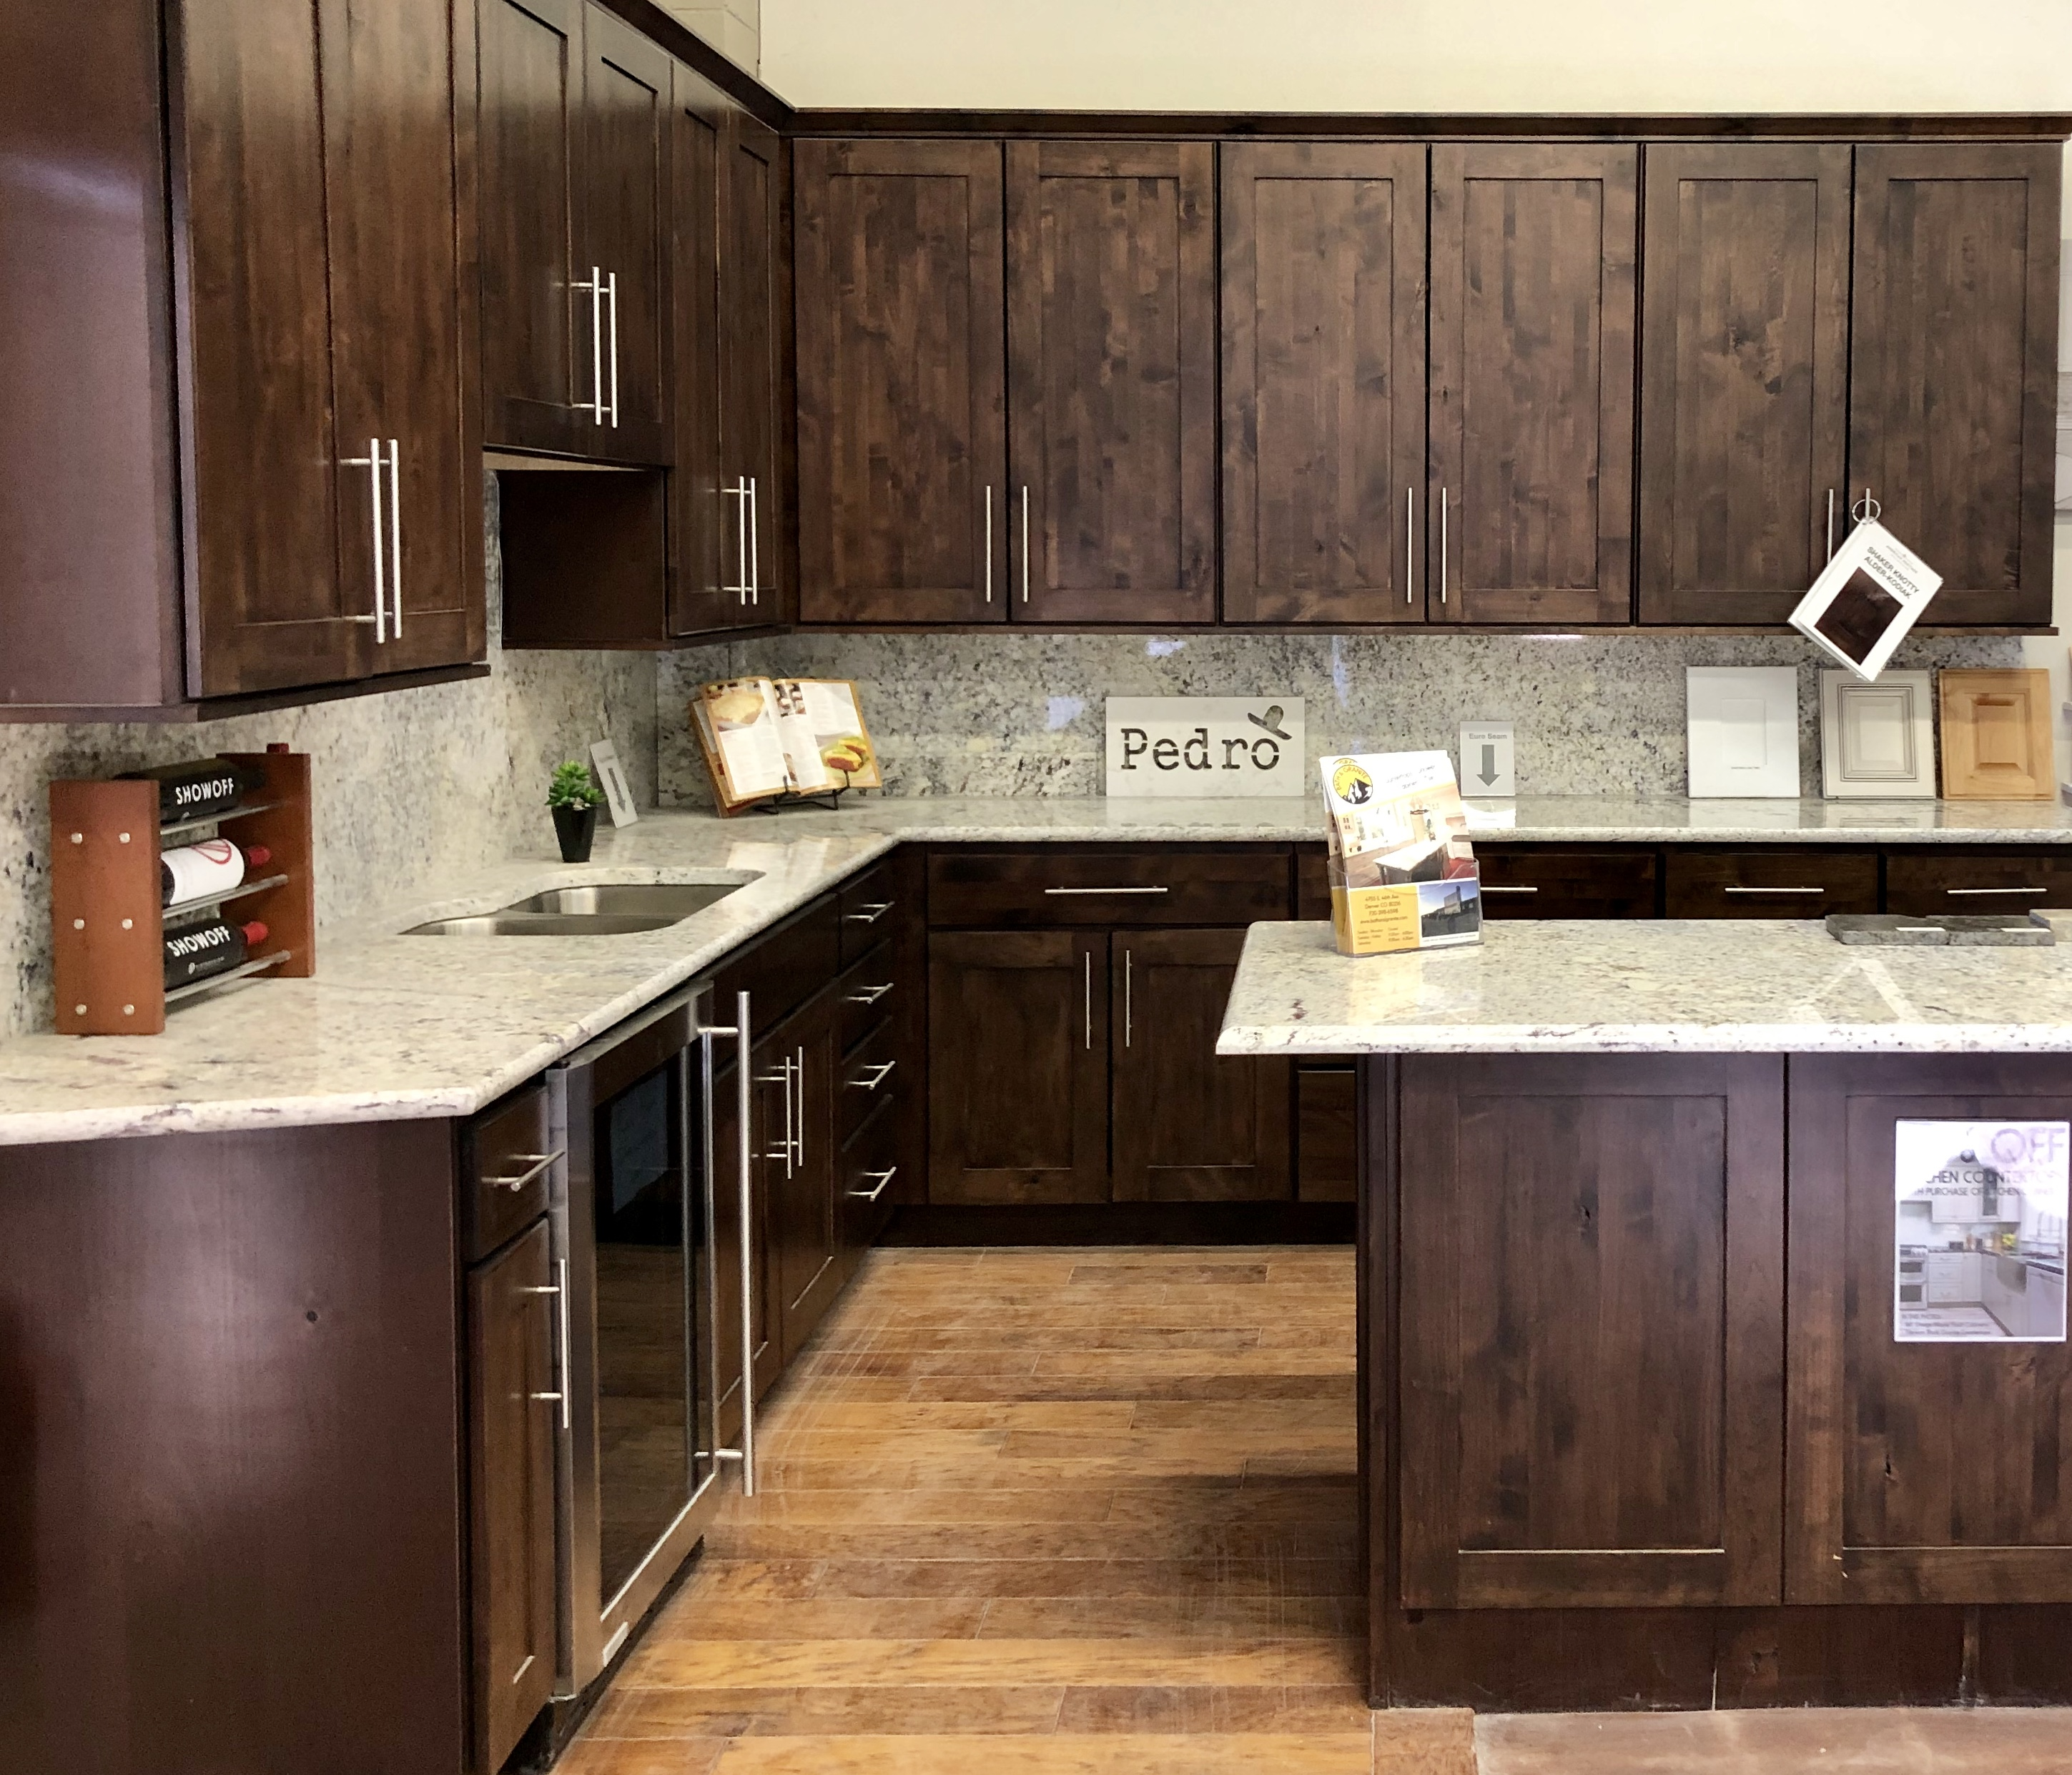 Kitchen Cabinets Denver Co: American Heritage Denver Kitchen Cabinets